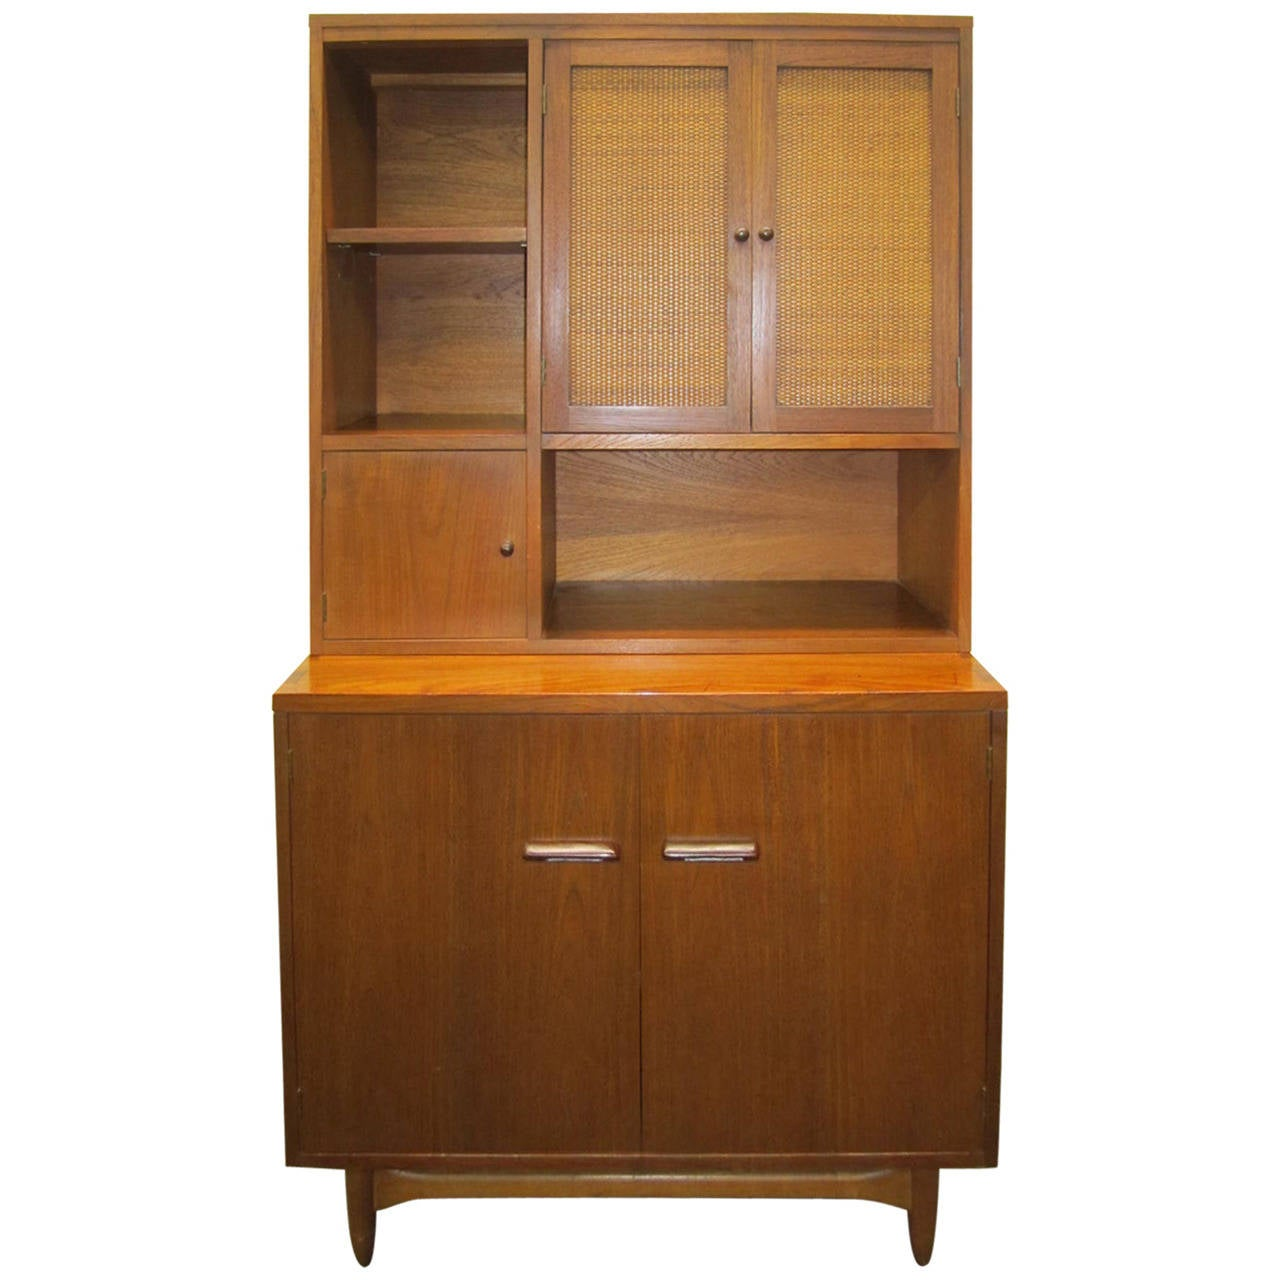 Rare Lane Acclaim Cabinet Caned Hutch Mid Century Modern